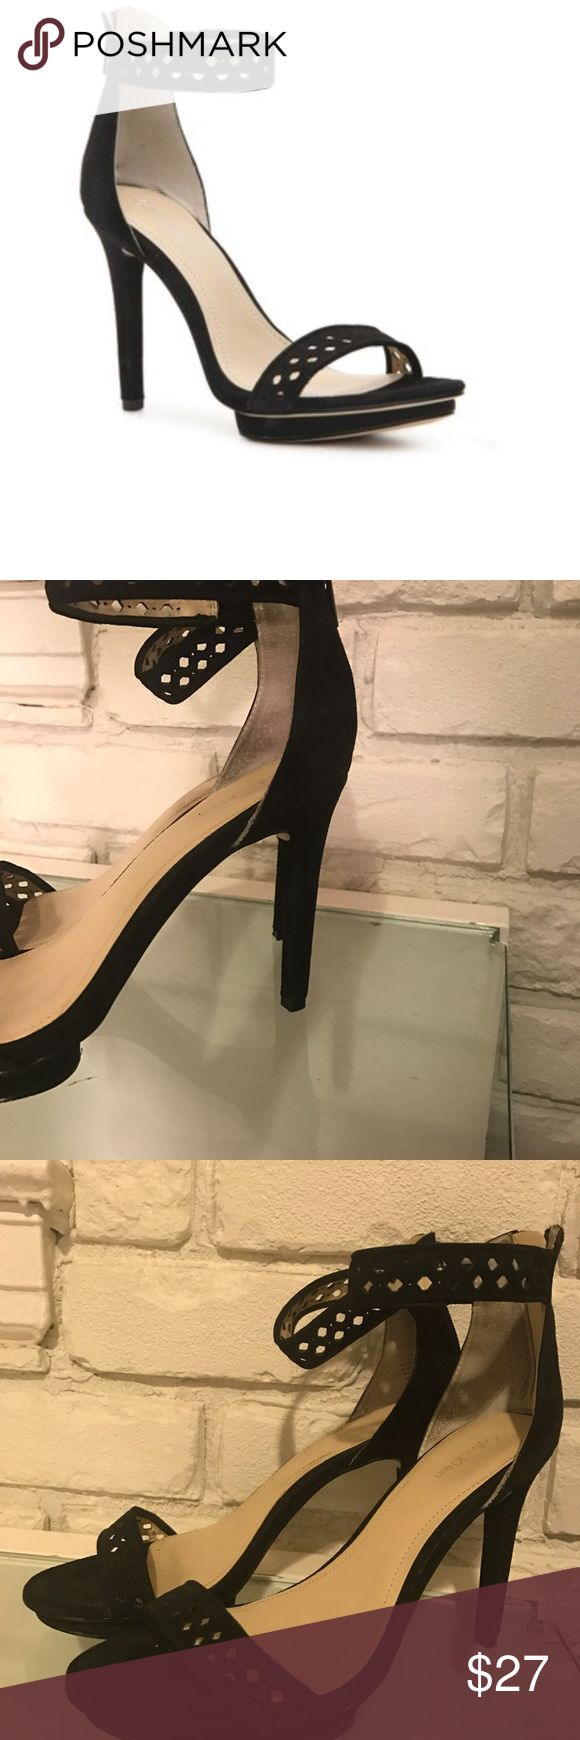 Calvin Klein: Verena Ankle Strap Sandal SIZE 8 Calvin Klein Verena ankle strap sandal. two- piece silhouette made of soft suede is sure to make you look effortlessly chic. WORN 1-2 times--slight wear in sole, other wise great condition. Calvin Klein Shoes Sandals